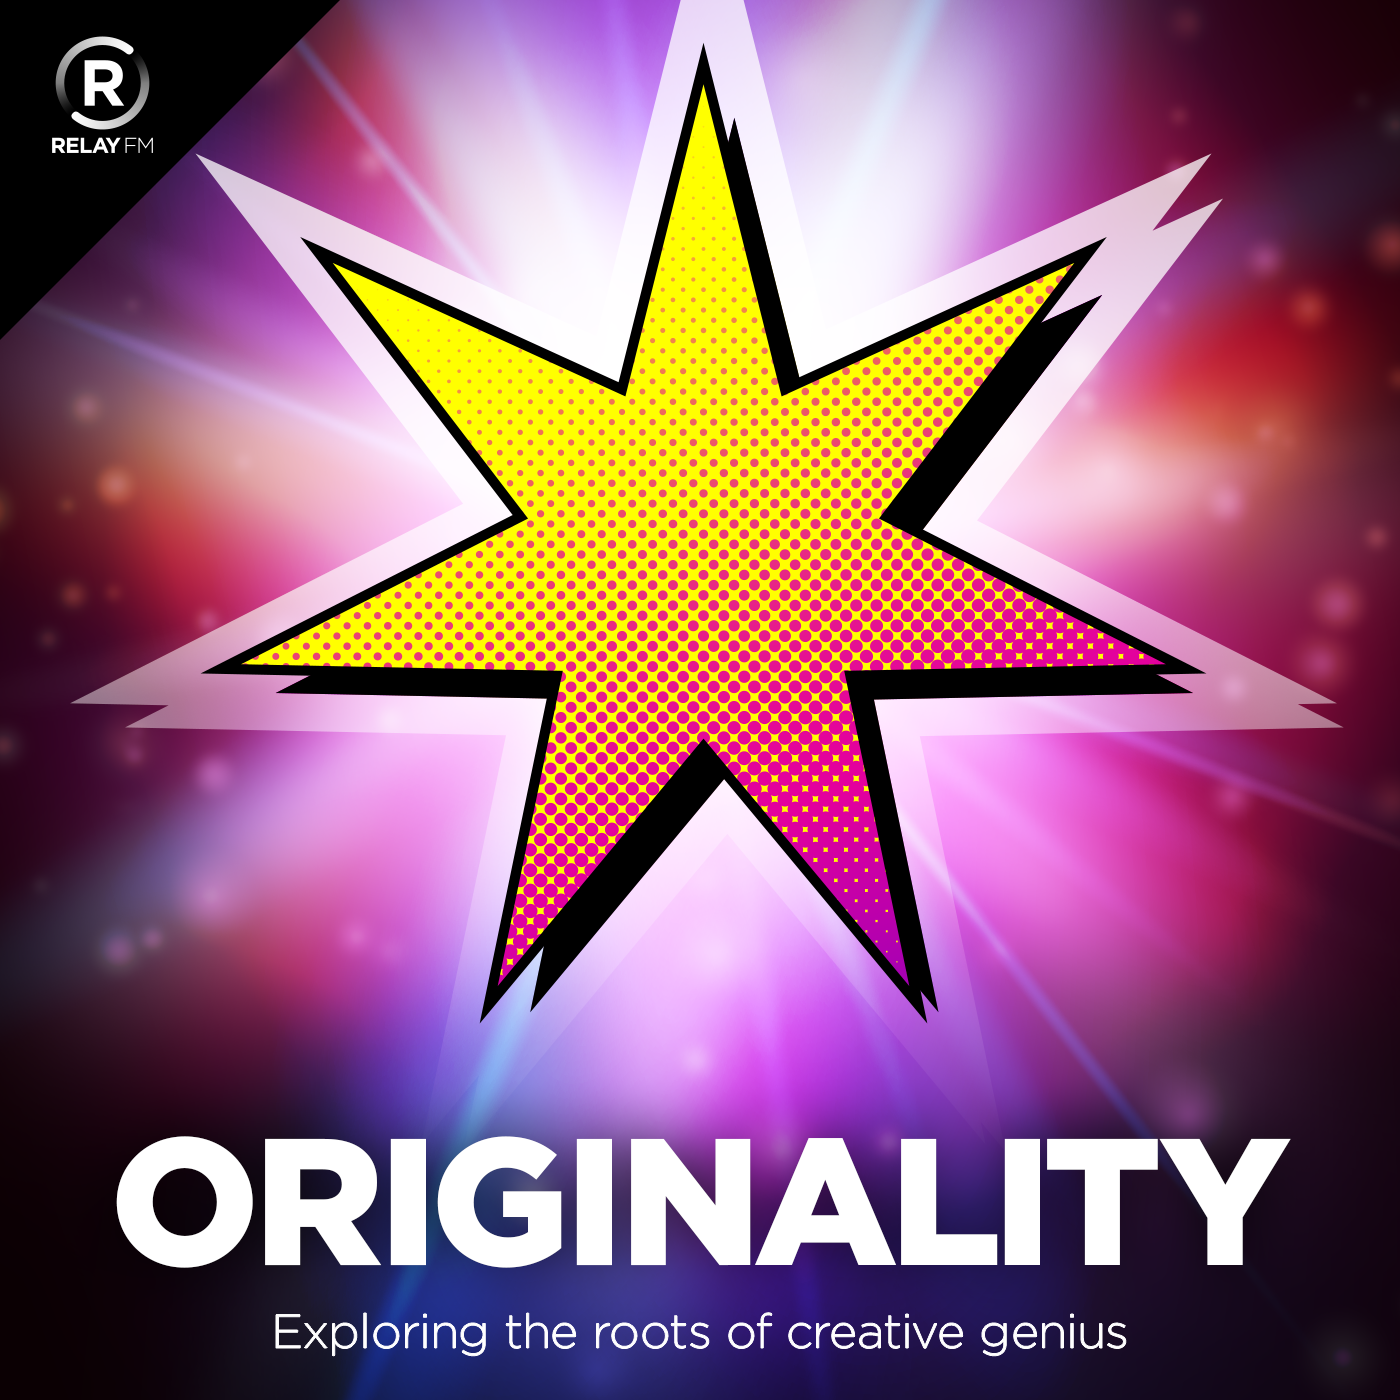 Podcast logo for Originality which has a 7 pointed star in pink and yellow with a dark pink and black background and the words Originality exploring the roots of creative genius